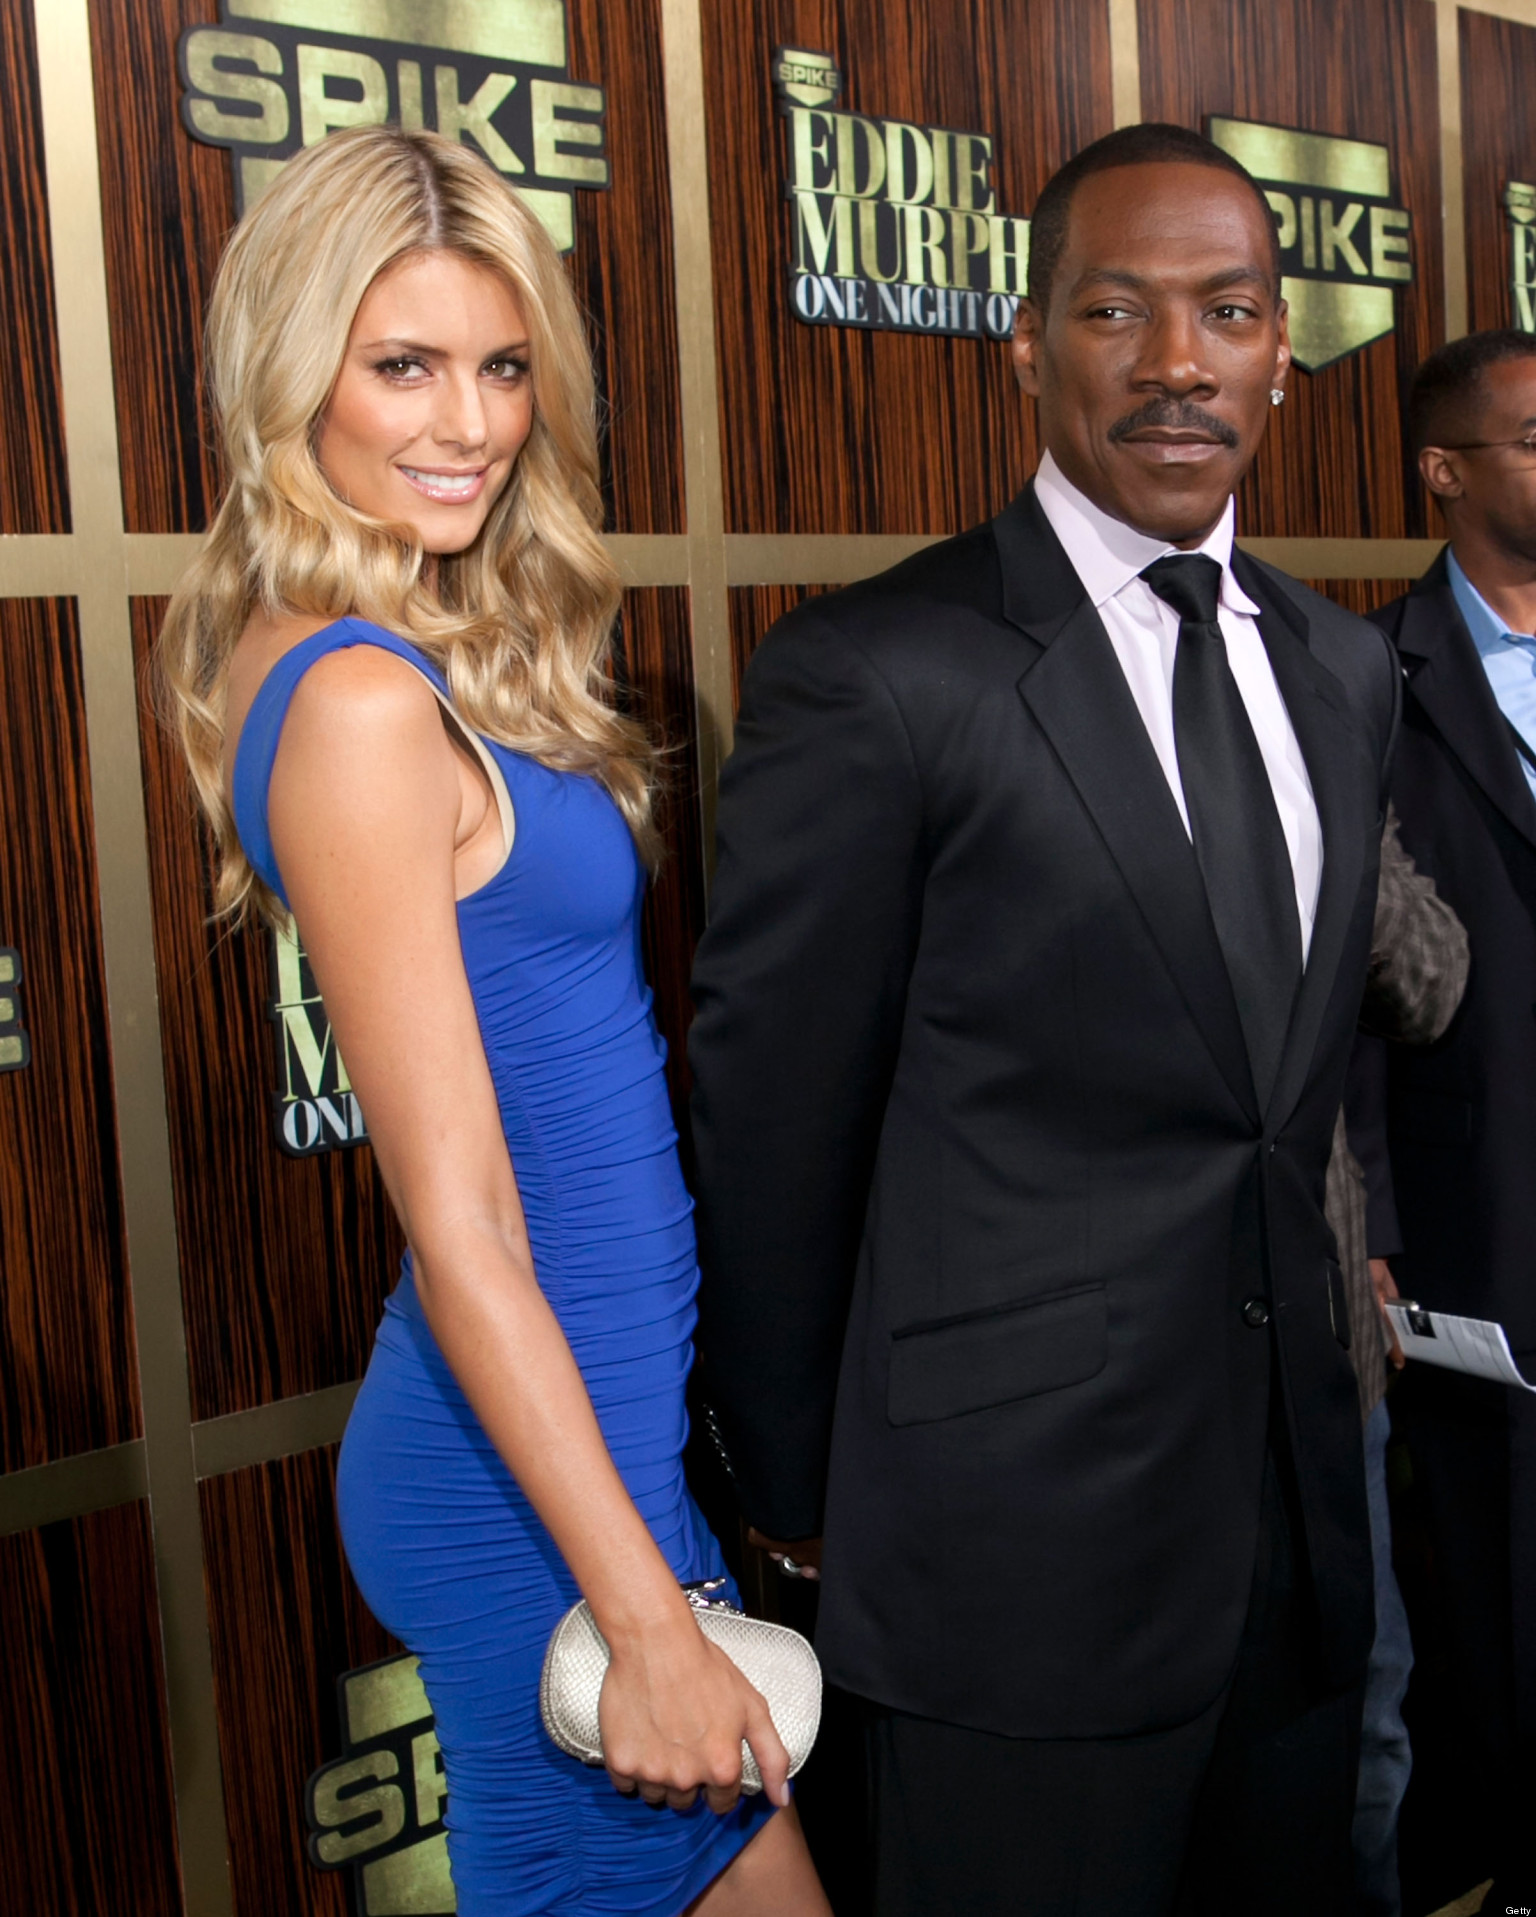 "BEVERLY HILLS, CA - NOVEMBER 03: Eddie Murphy and Paige Butcher arrive to Spike TV's ""Eddie Murphy: One Night Only"" - Arrivals at Saban Theatre on November 3, 2012 in Beverly Hills, California. (Photo by Gabriel Olsen/FilmMagic)"